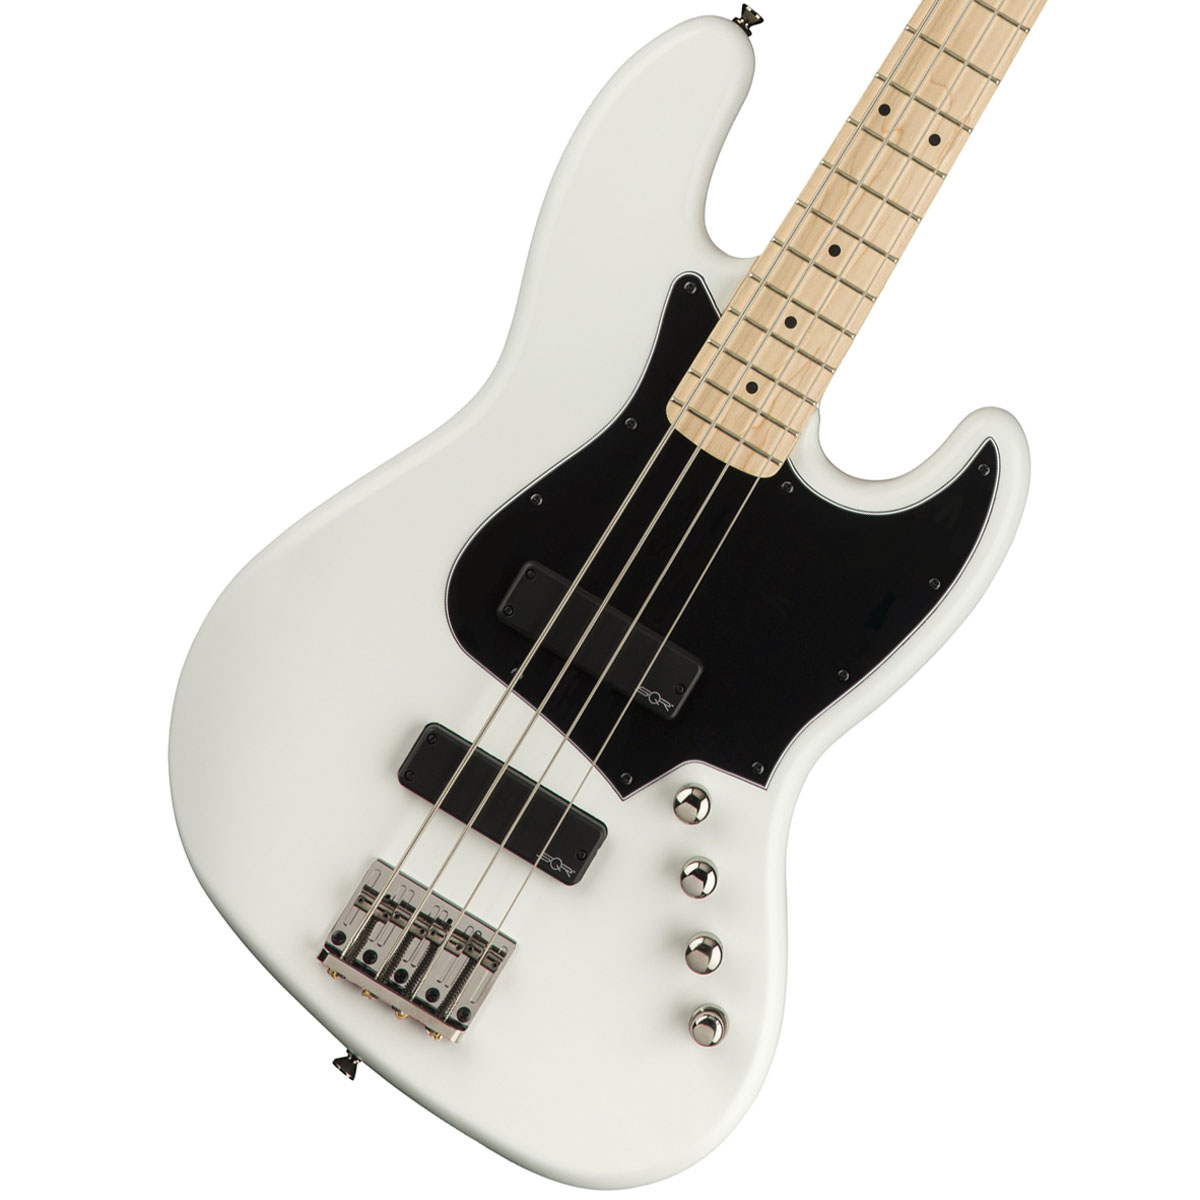 Squier by Fender / Contemporary Active Jazz Bass HH Flat White スクワイア, お酒のちゃがたパーク 78352f38